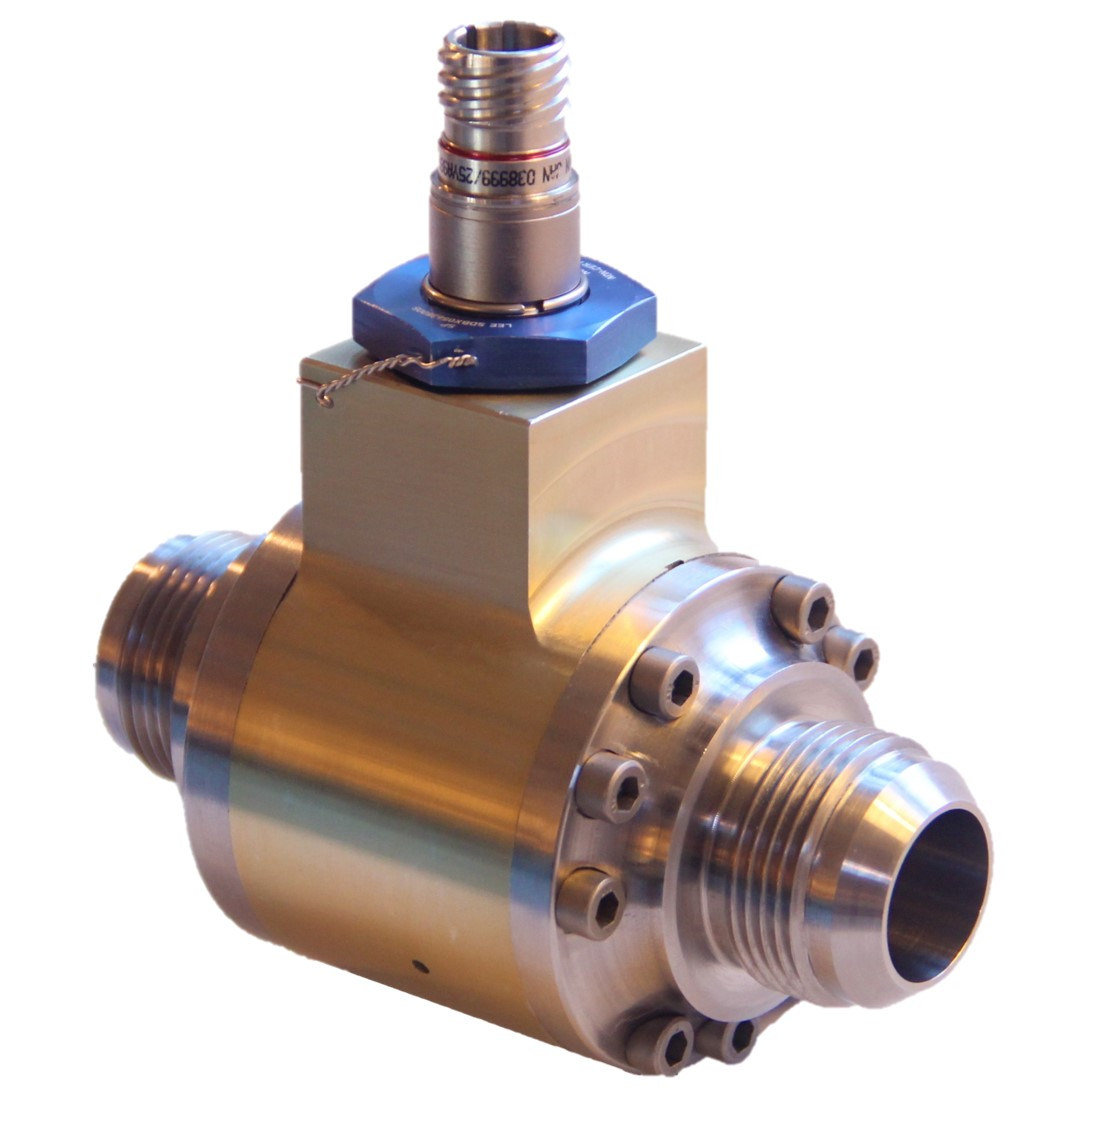 TS-160S Solenoid Piloted Poppet Valve